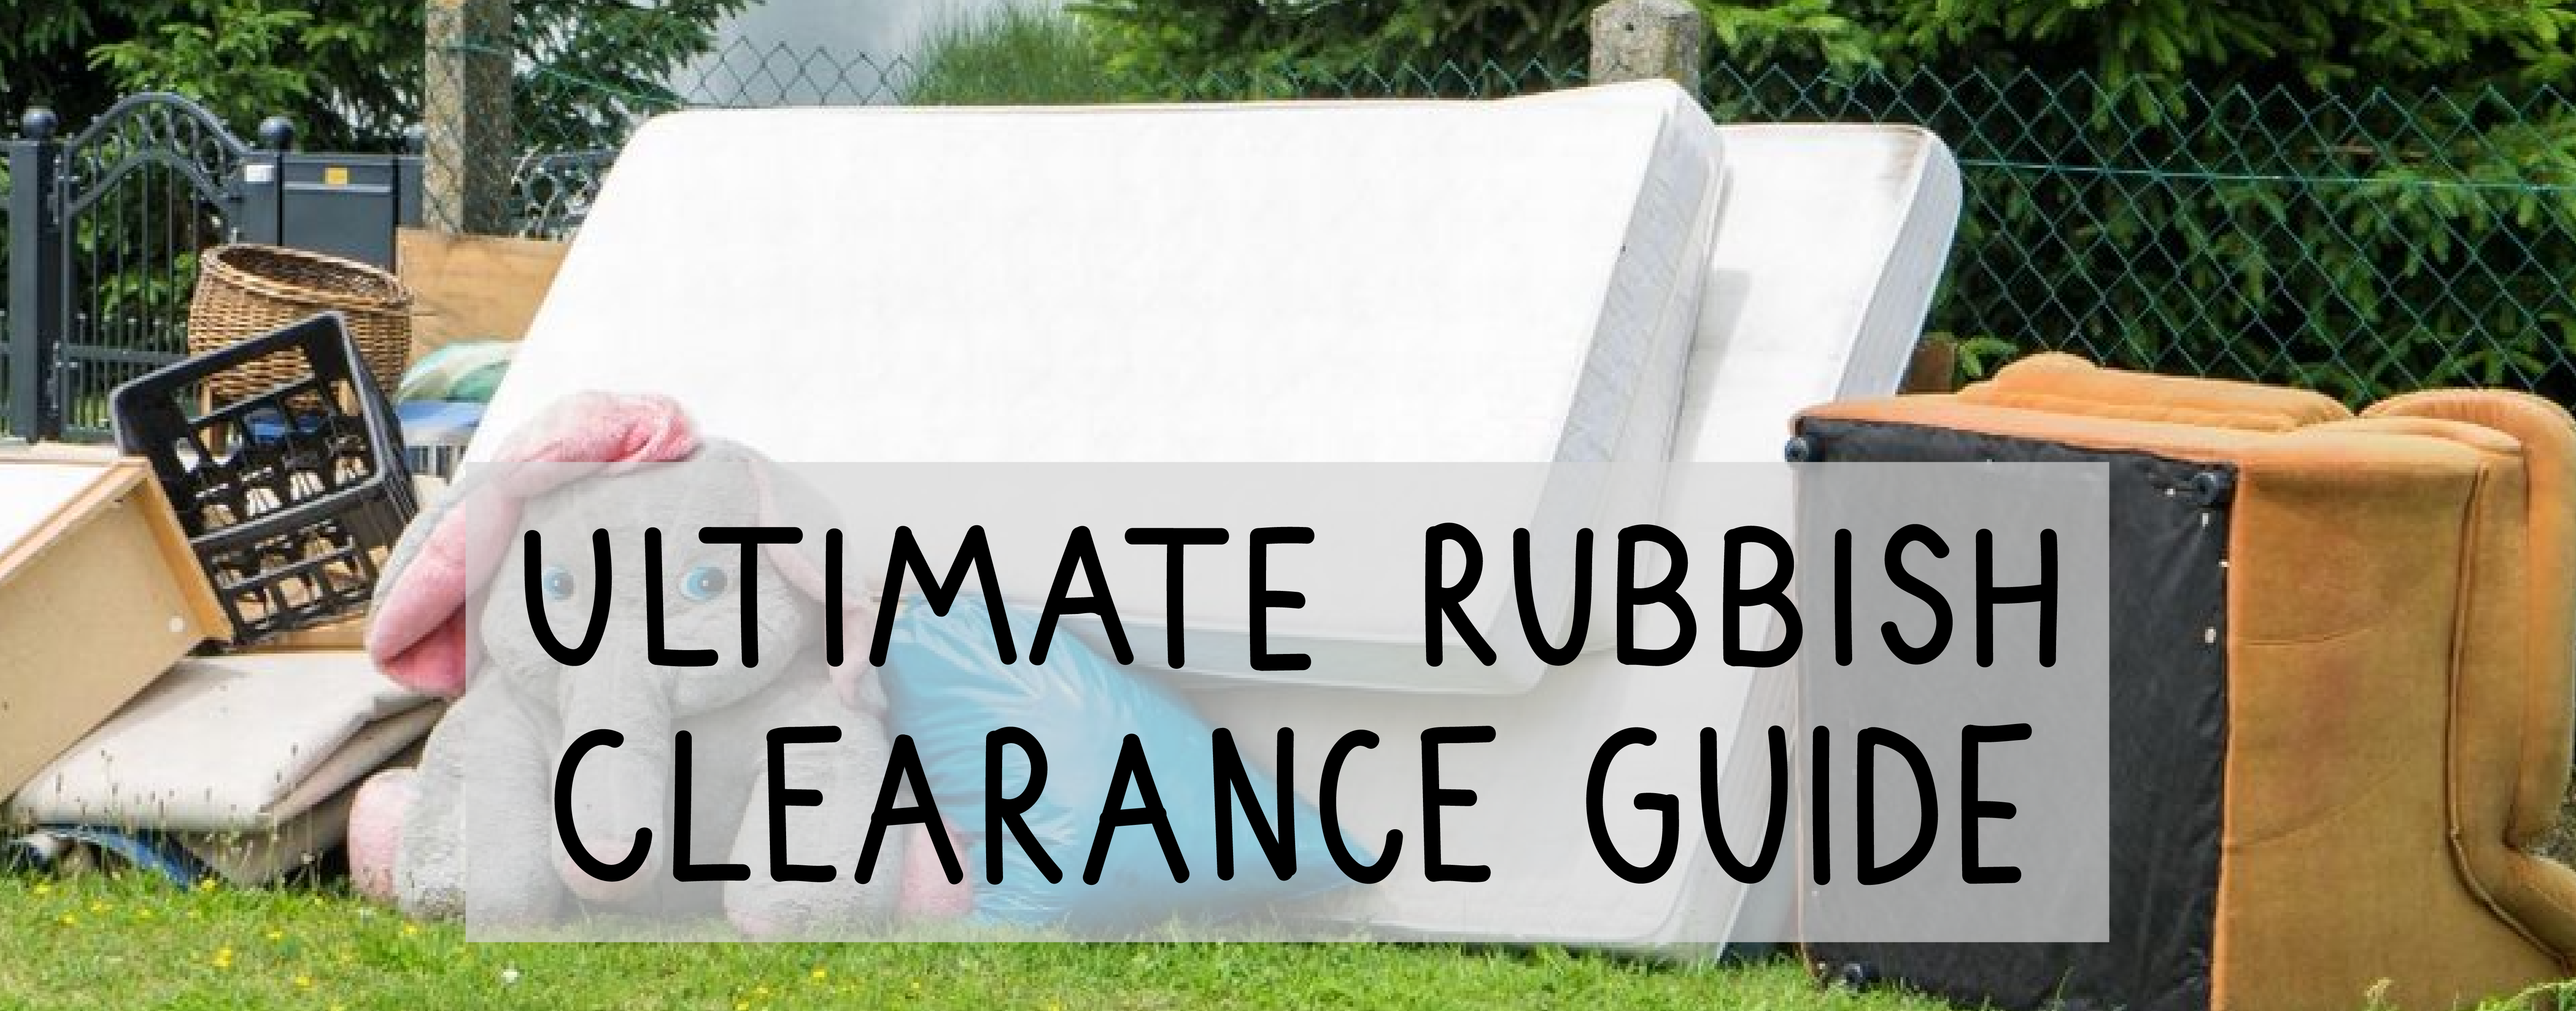 ultimate rubbish clearance guide